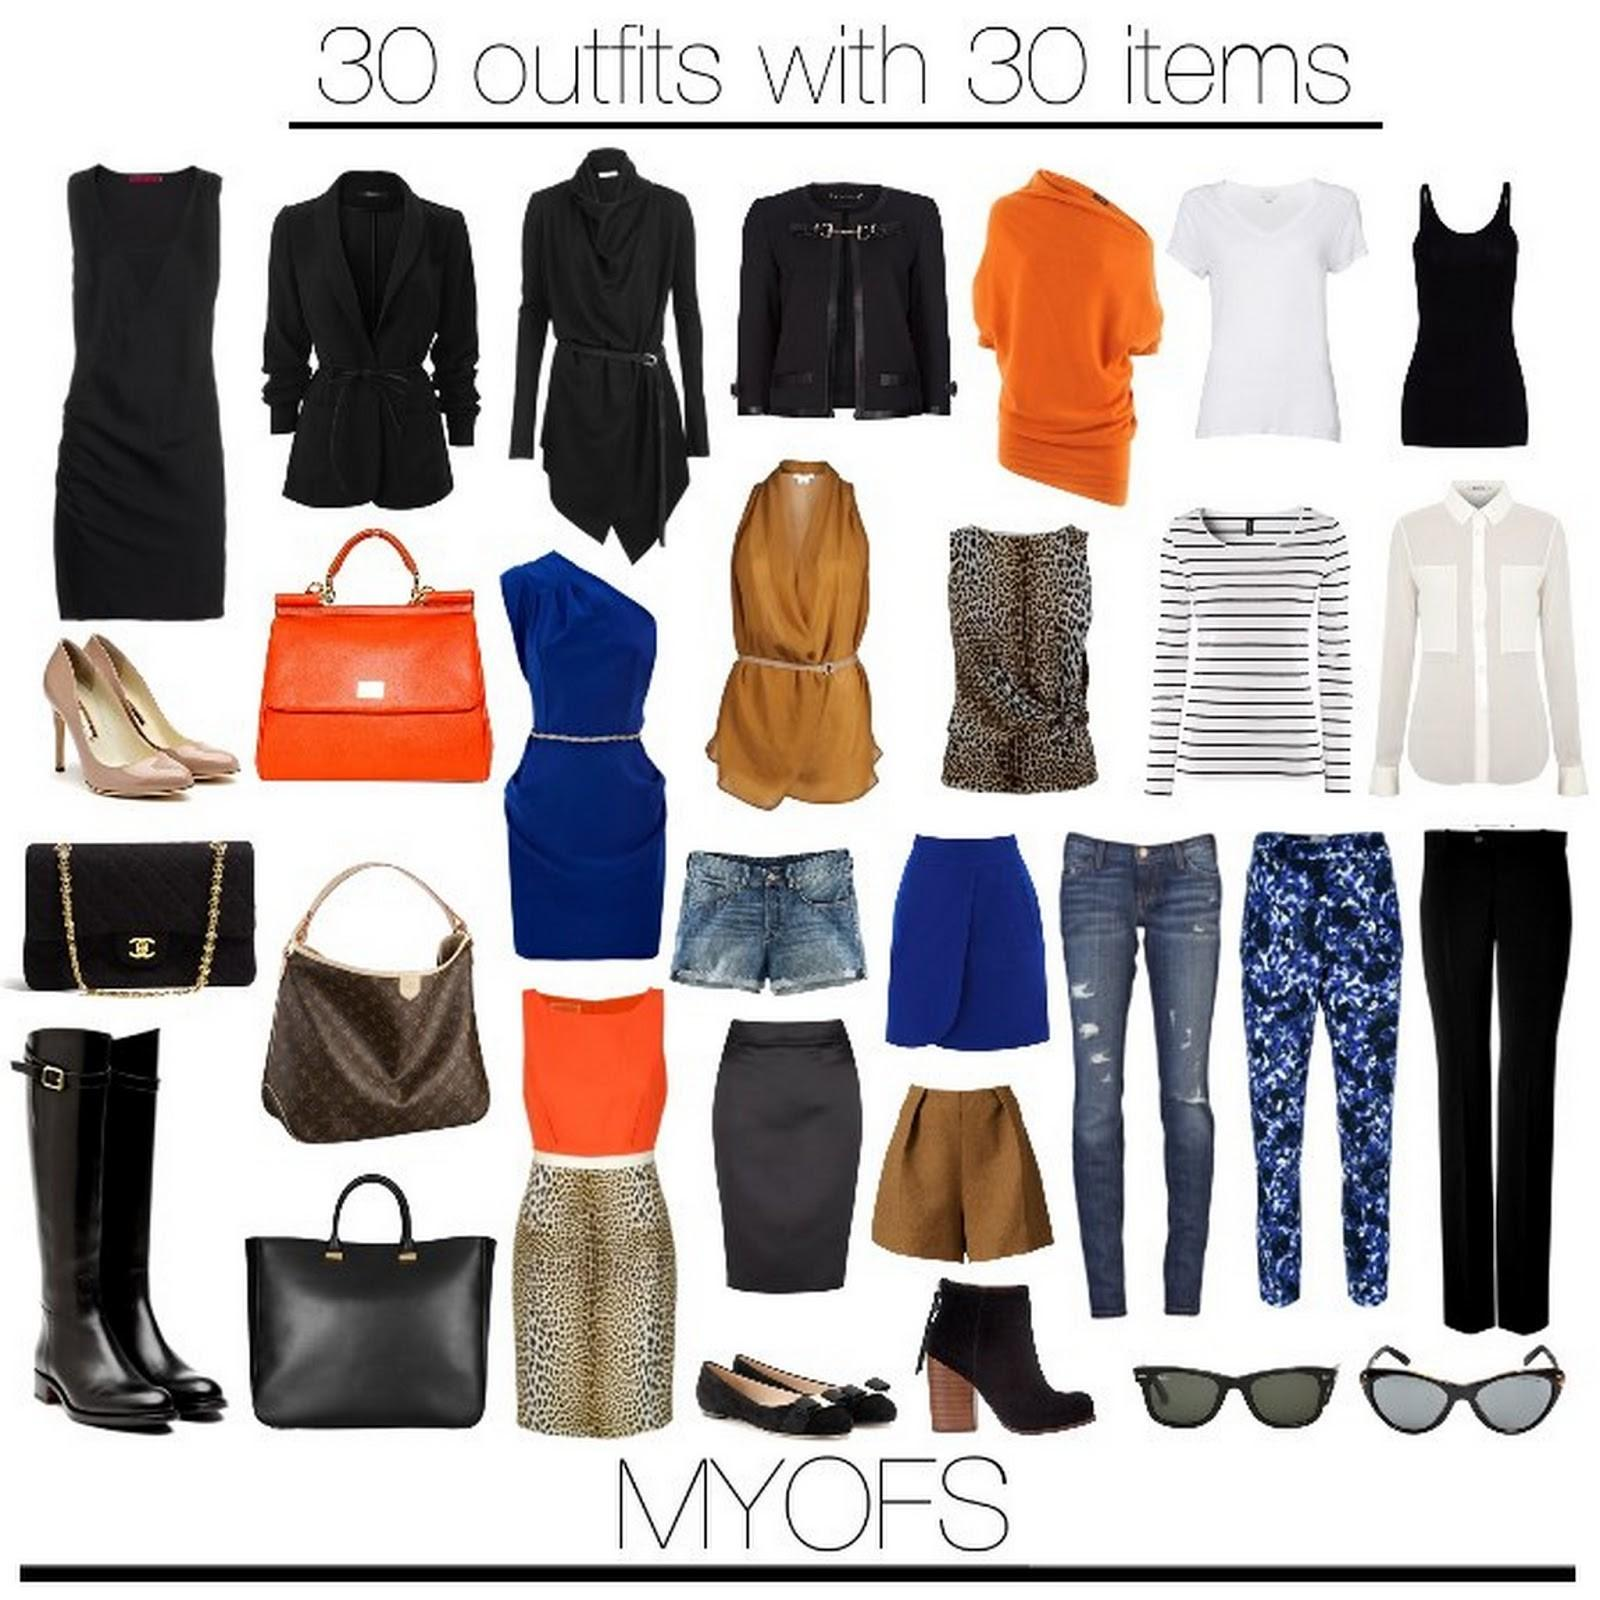 Myofs Outfits Items